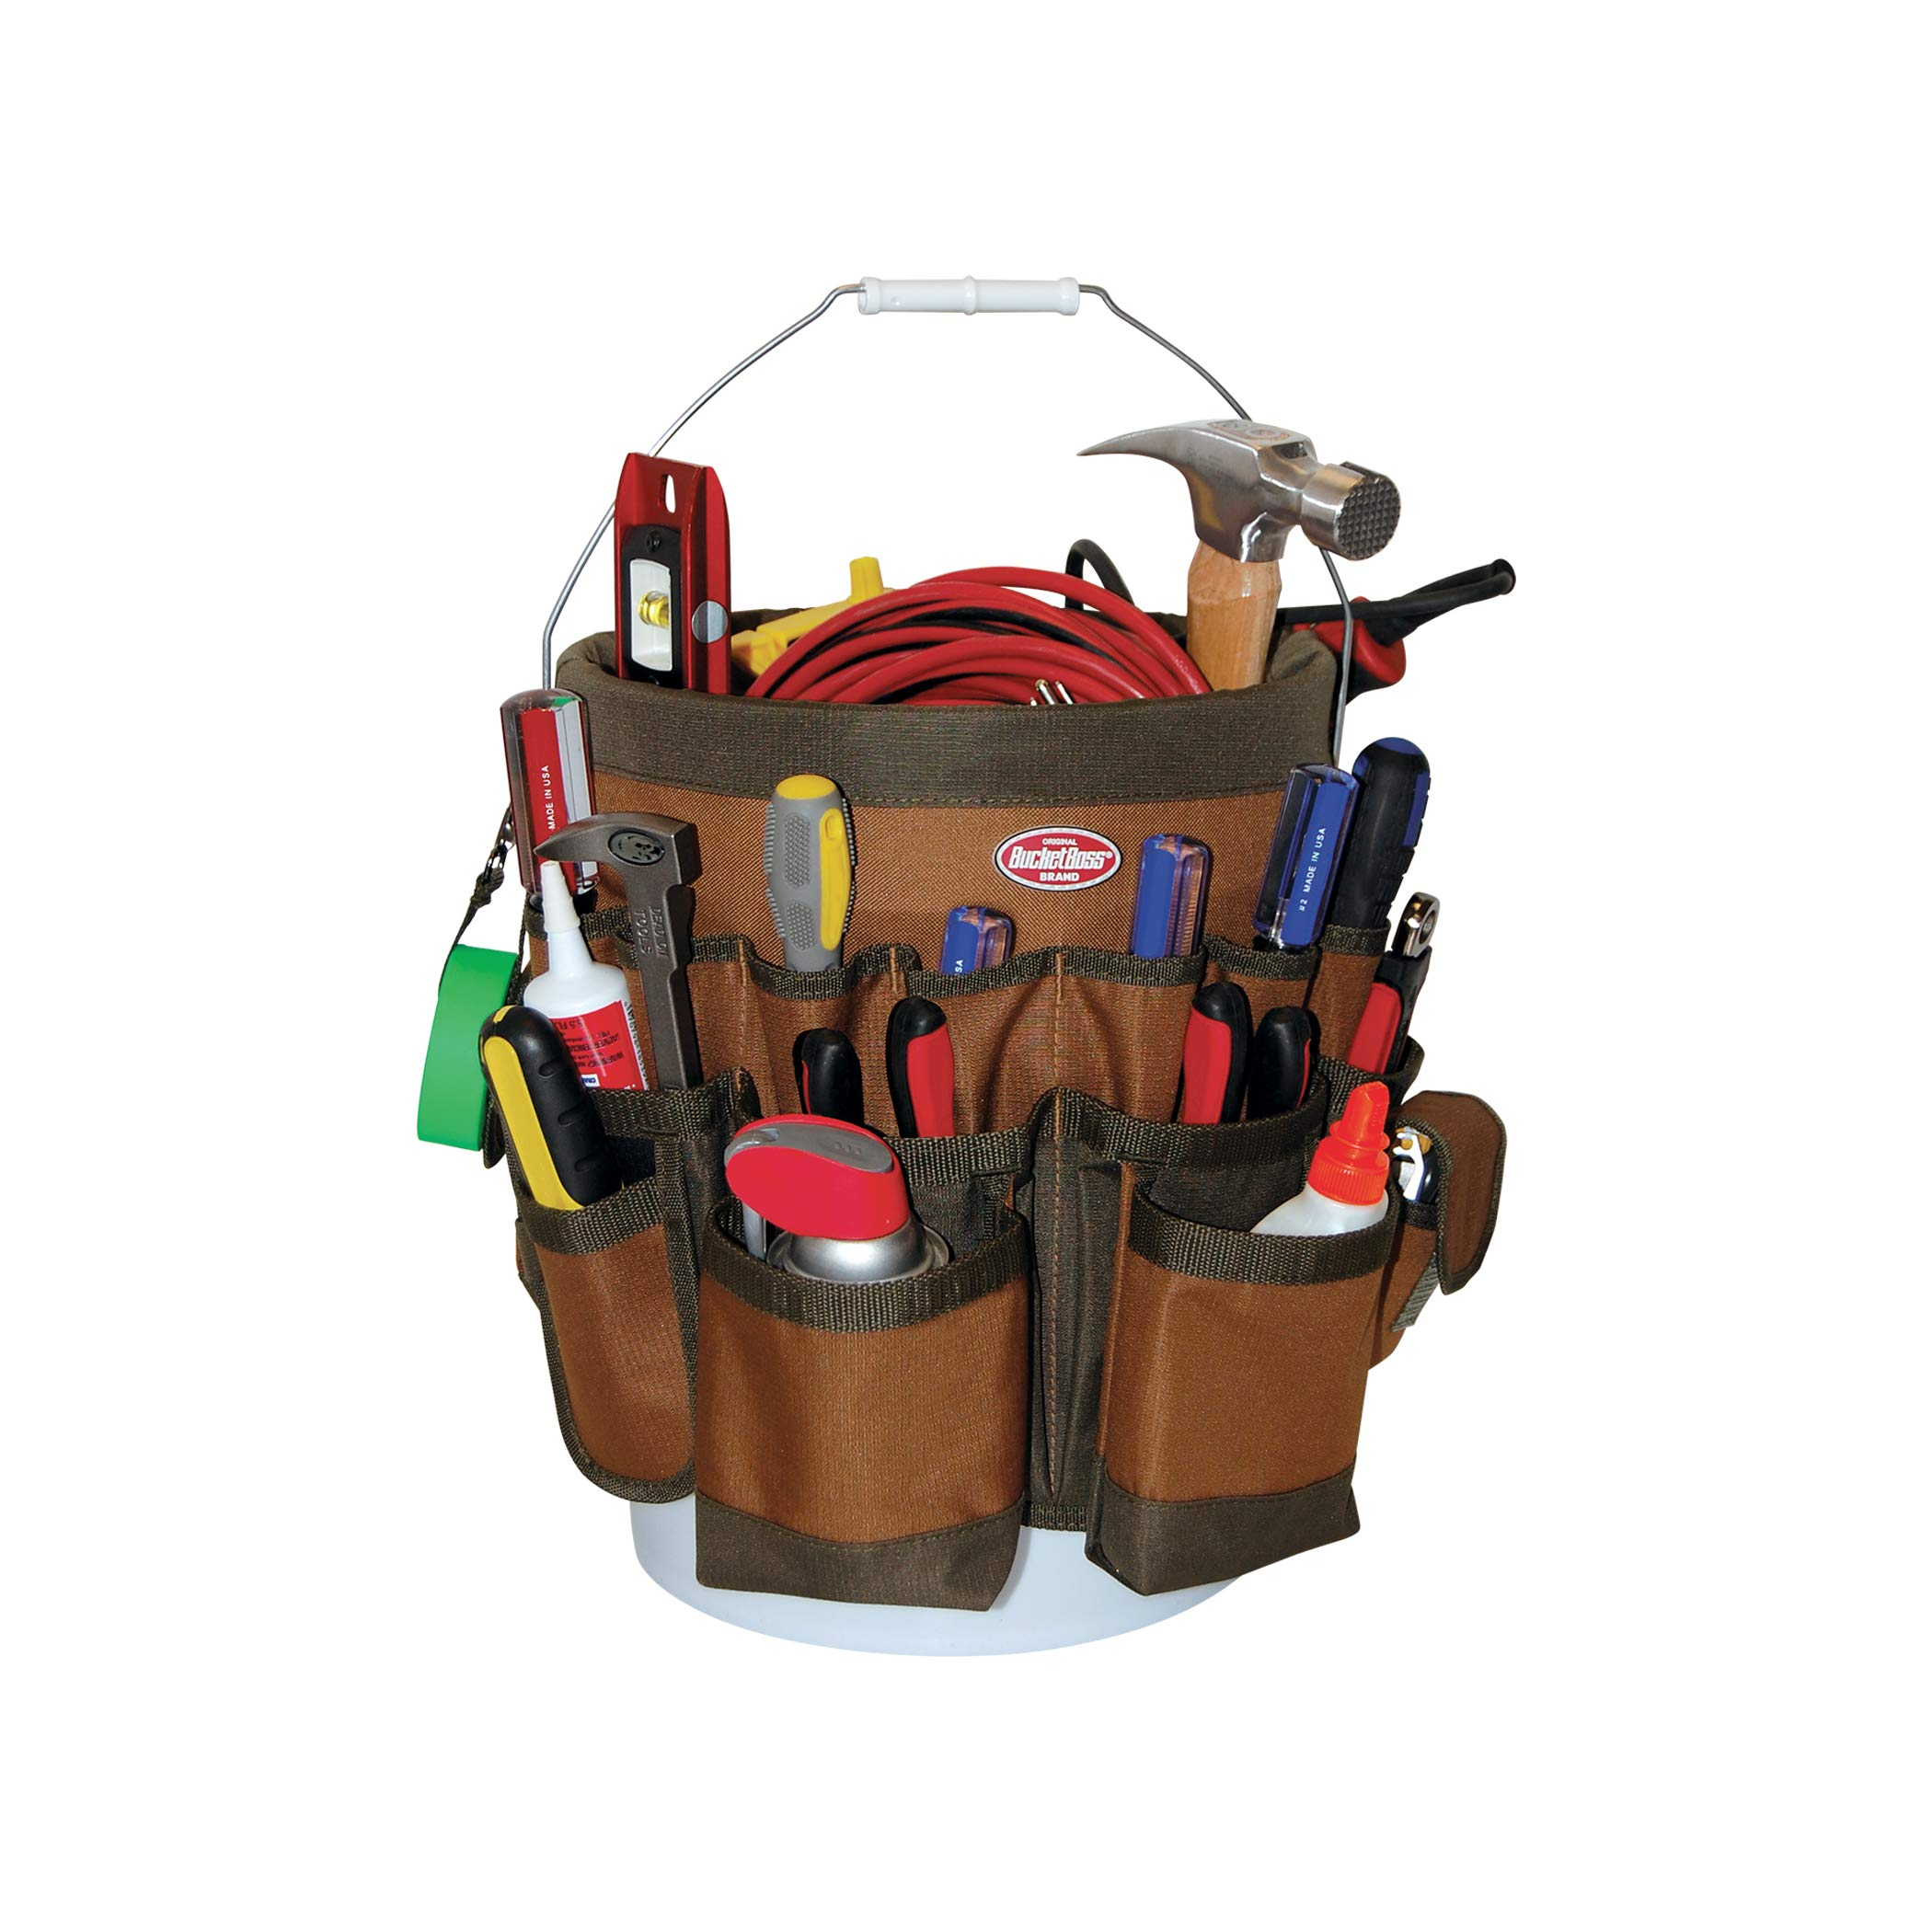 Bucket Boss 56 Bucket Tool Organizer in Brown, 10056 by Bucket Boss (Image #4)